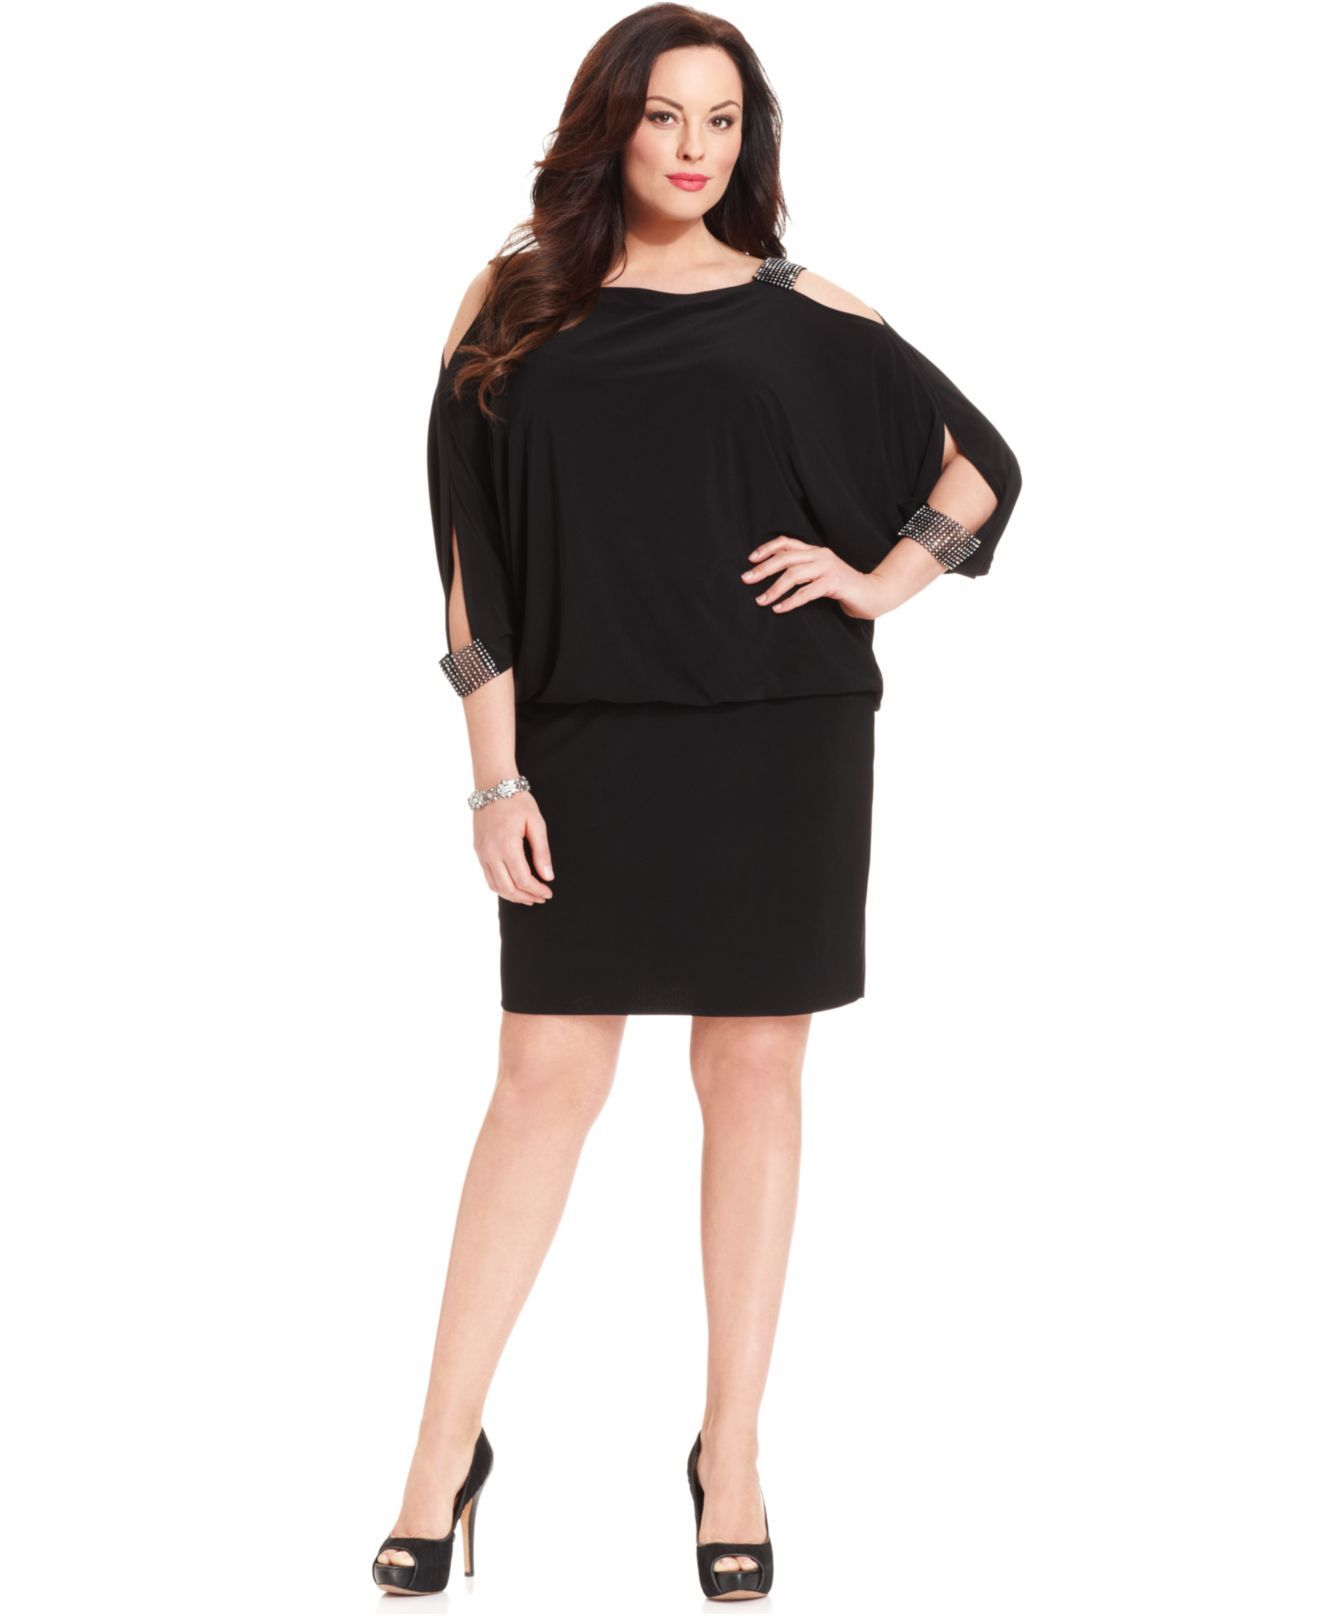 Betsy adams plus size dresses | Cute! | Pinterest | Sleeved dress ...